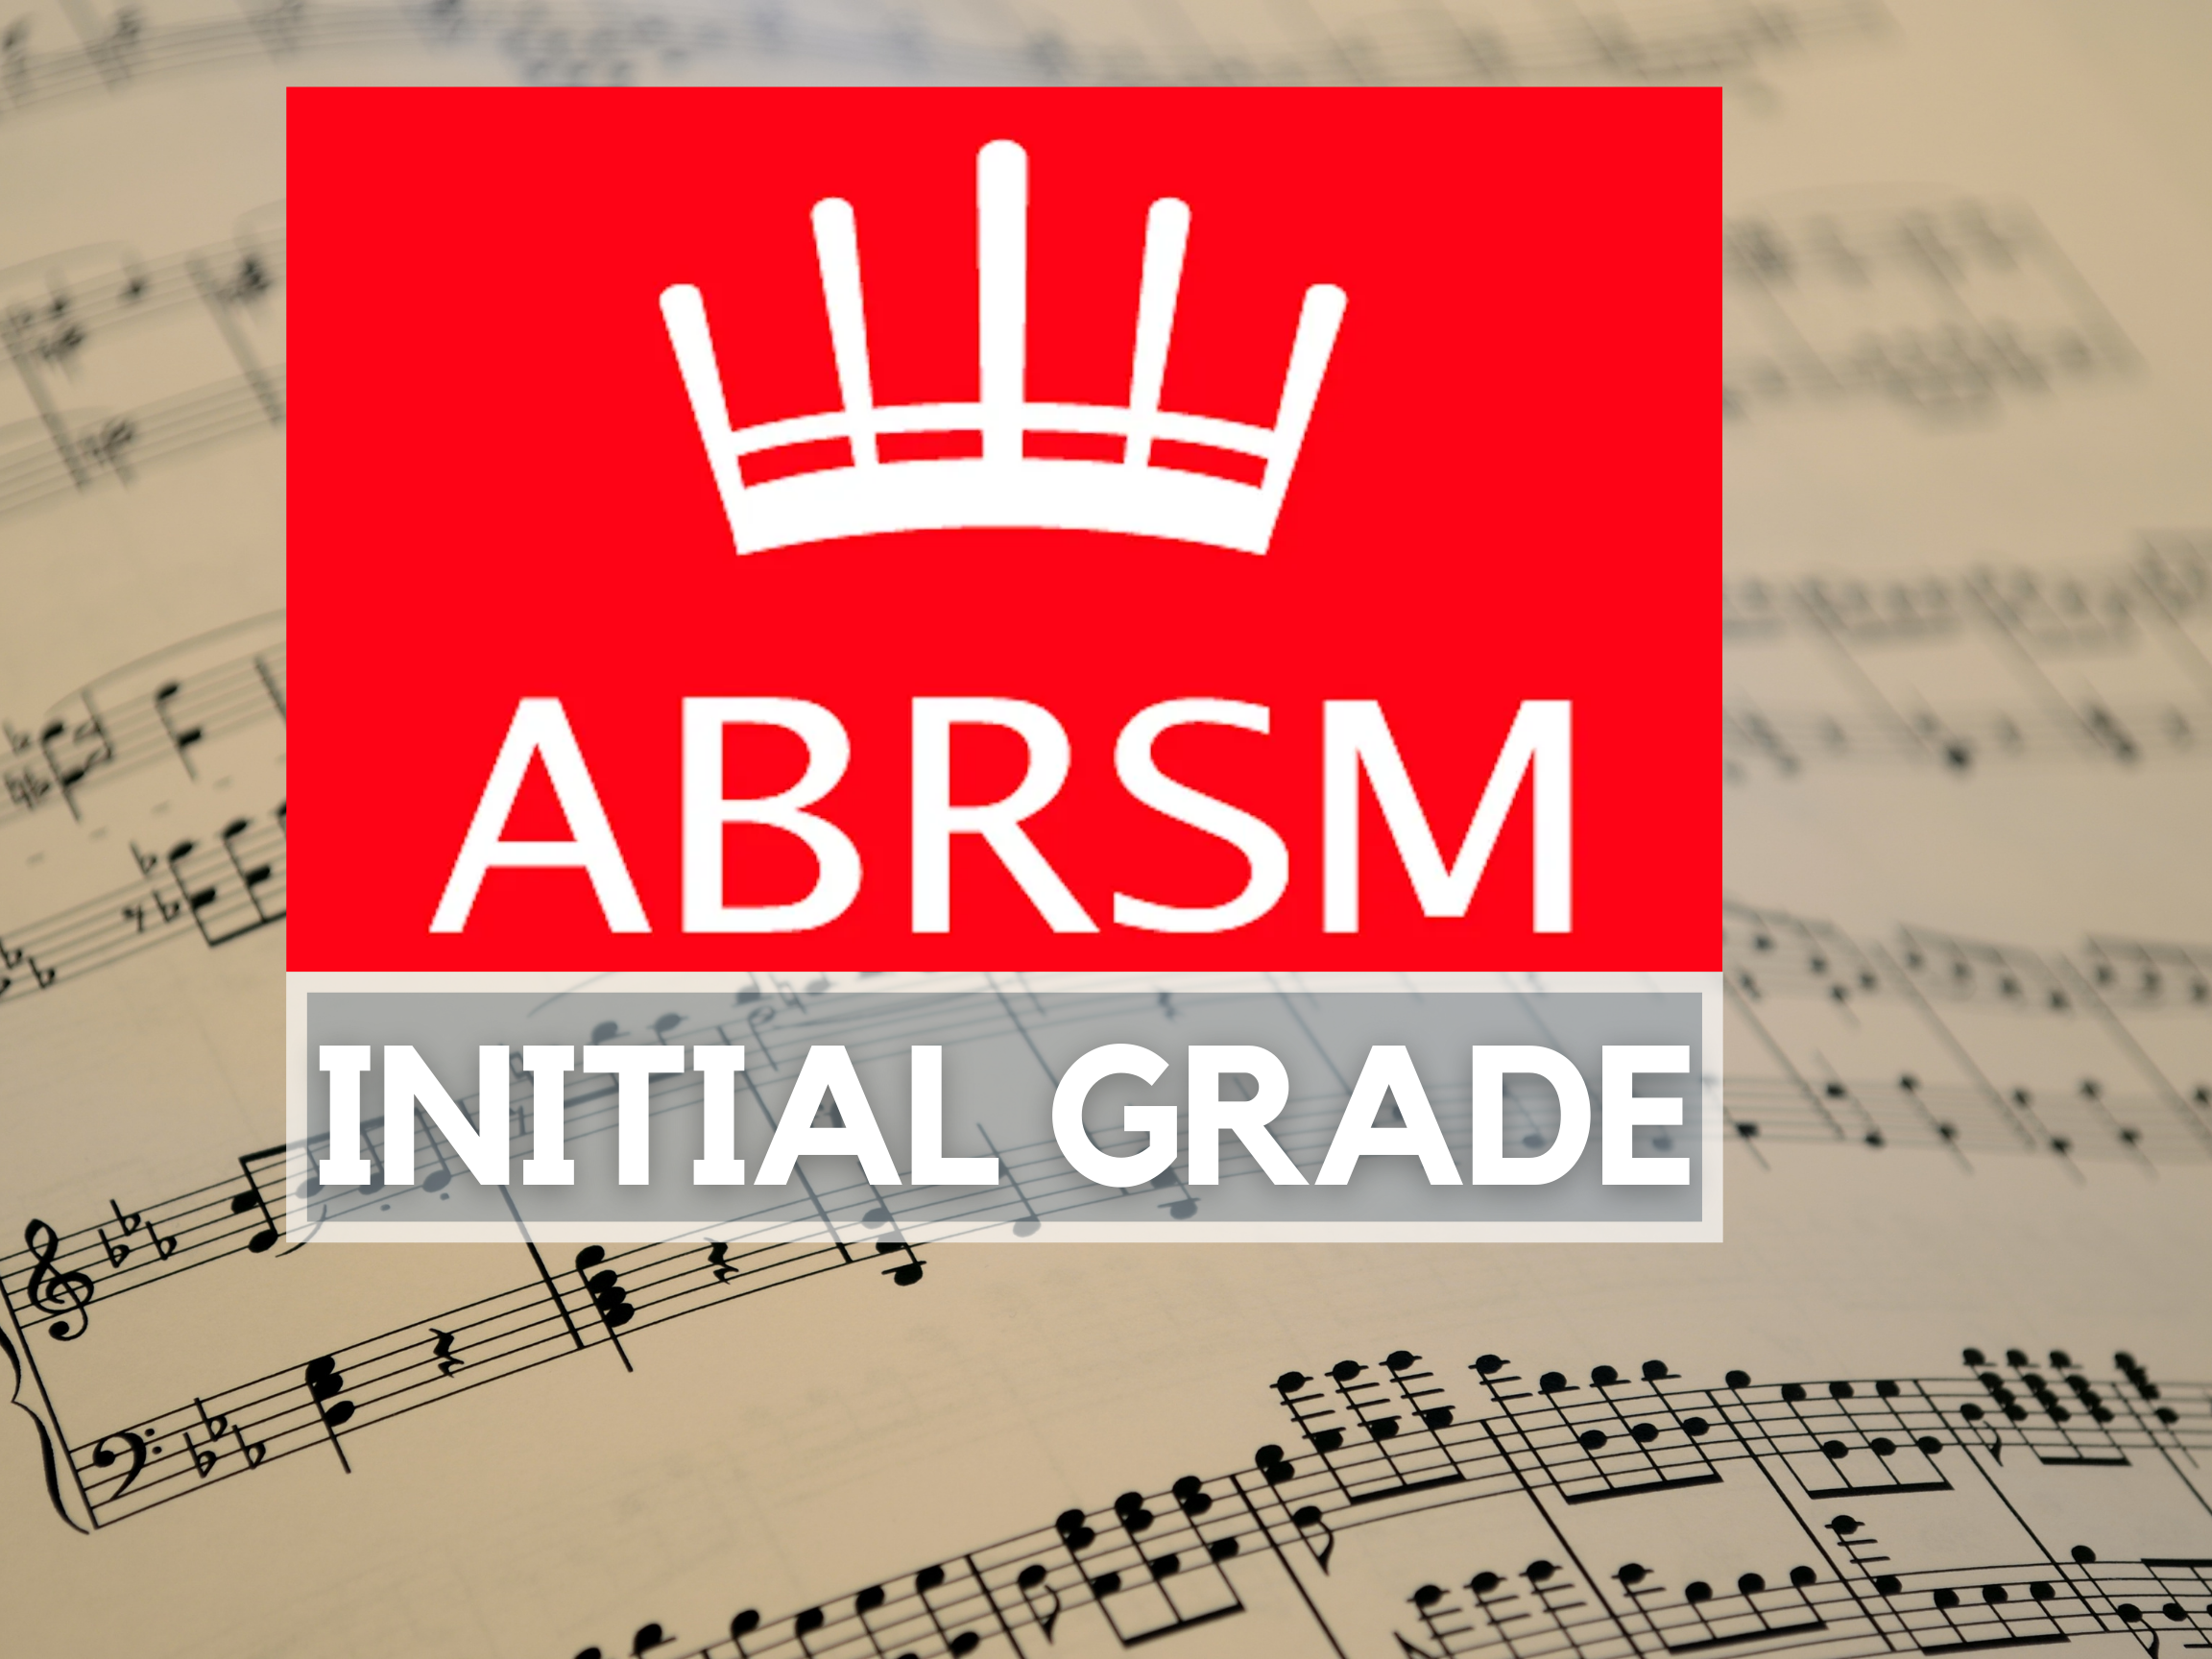 PIANO ABRSM Initial Grade Program